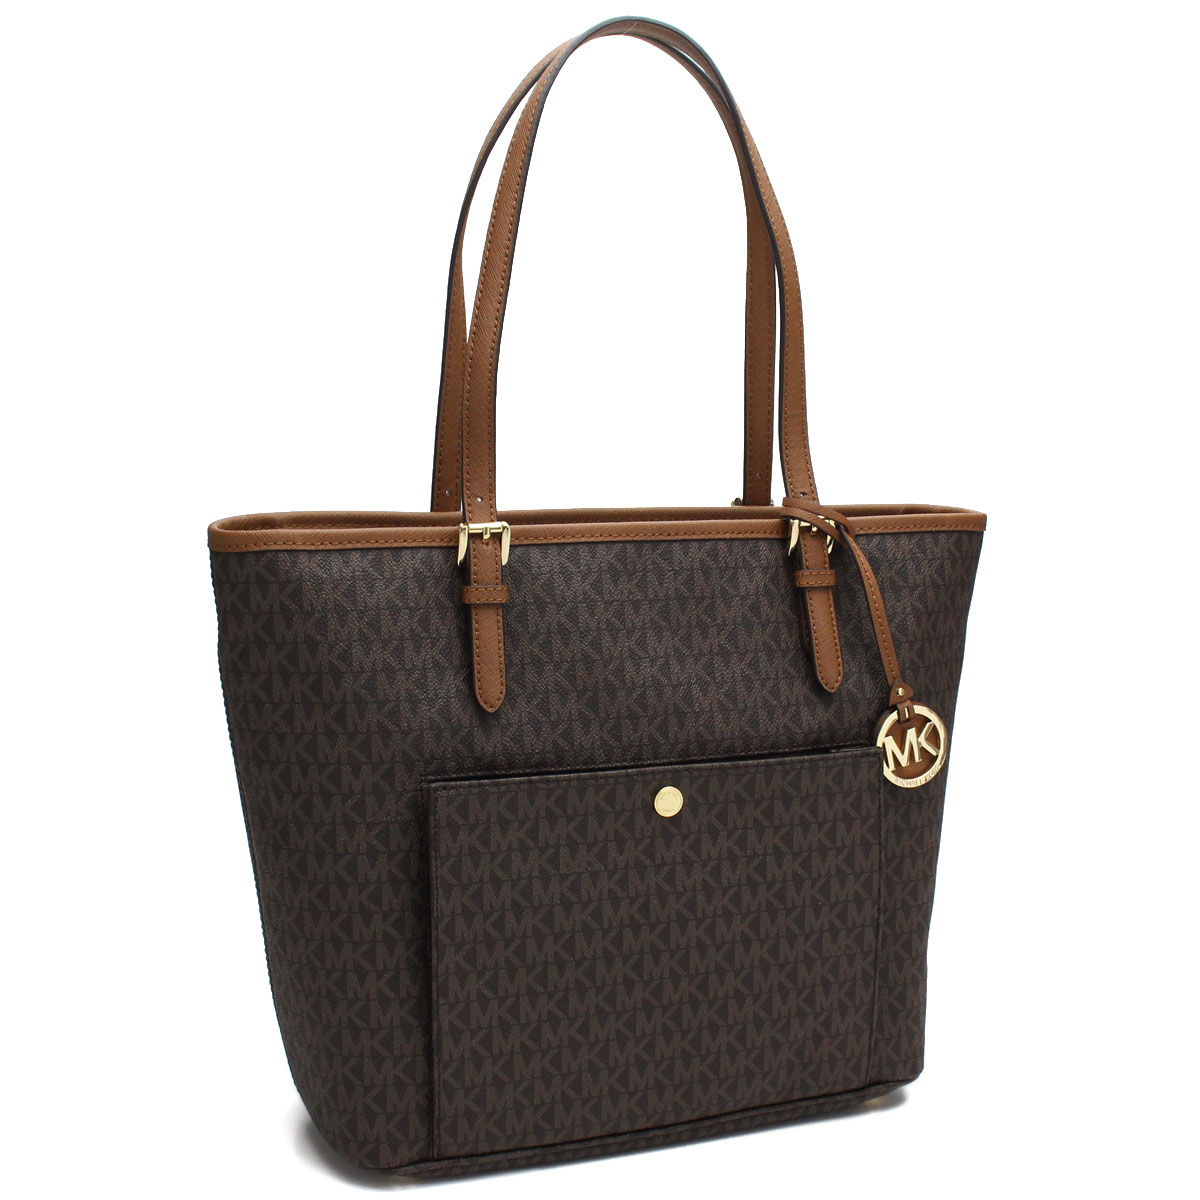 1a3274f90d21 Bighit The total brand wholesale: Michael Kors (MICHAEL KORS) JET SET jet  set MK signature tote bag 30S7GTTT7B BROWN brown system | Rakuten Global  Market